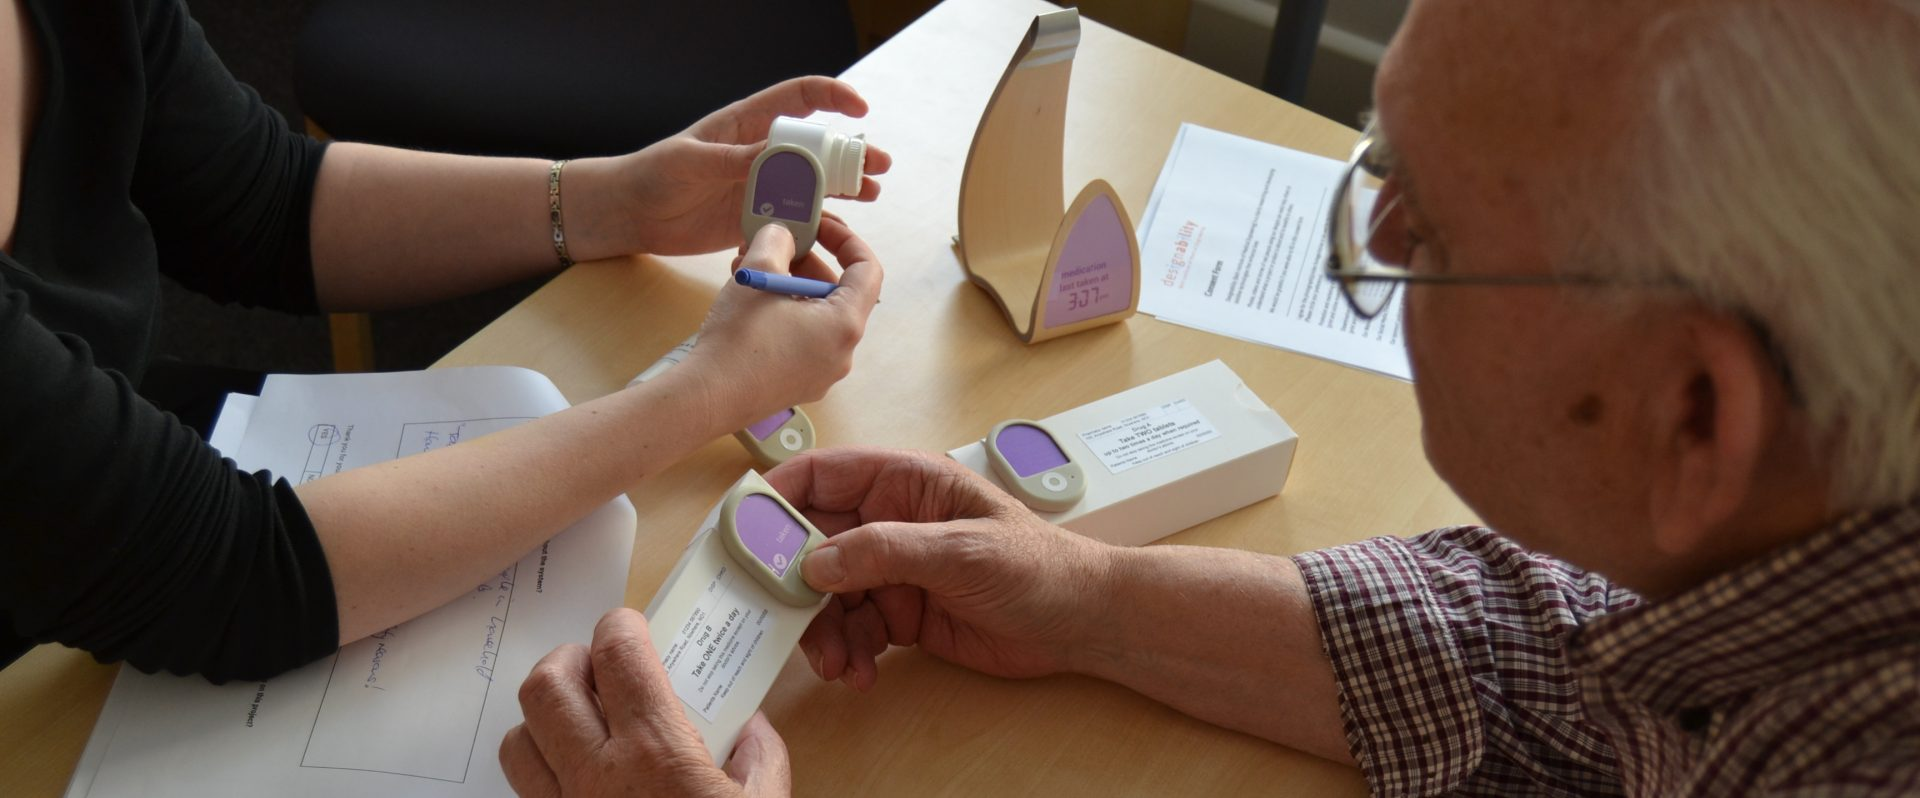 A close-up of people's hands holding a medicine reminder system